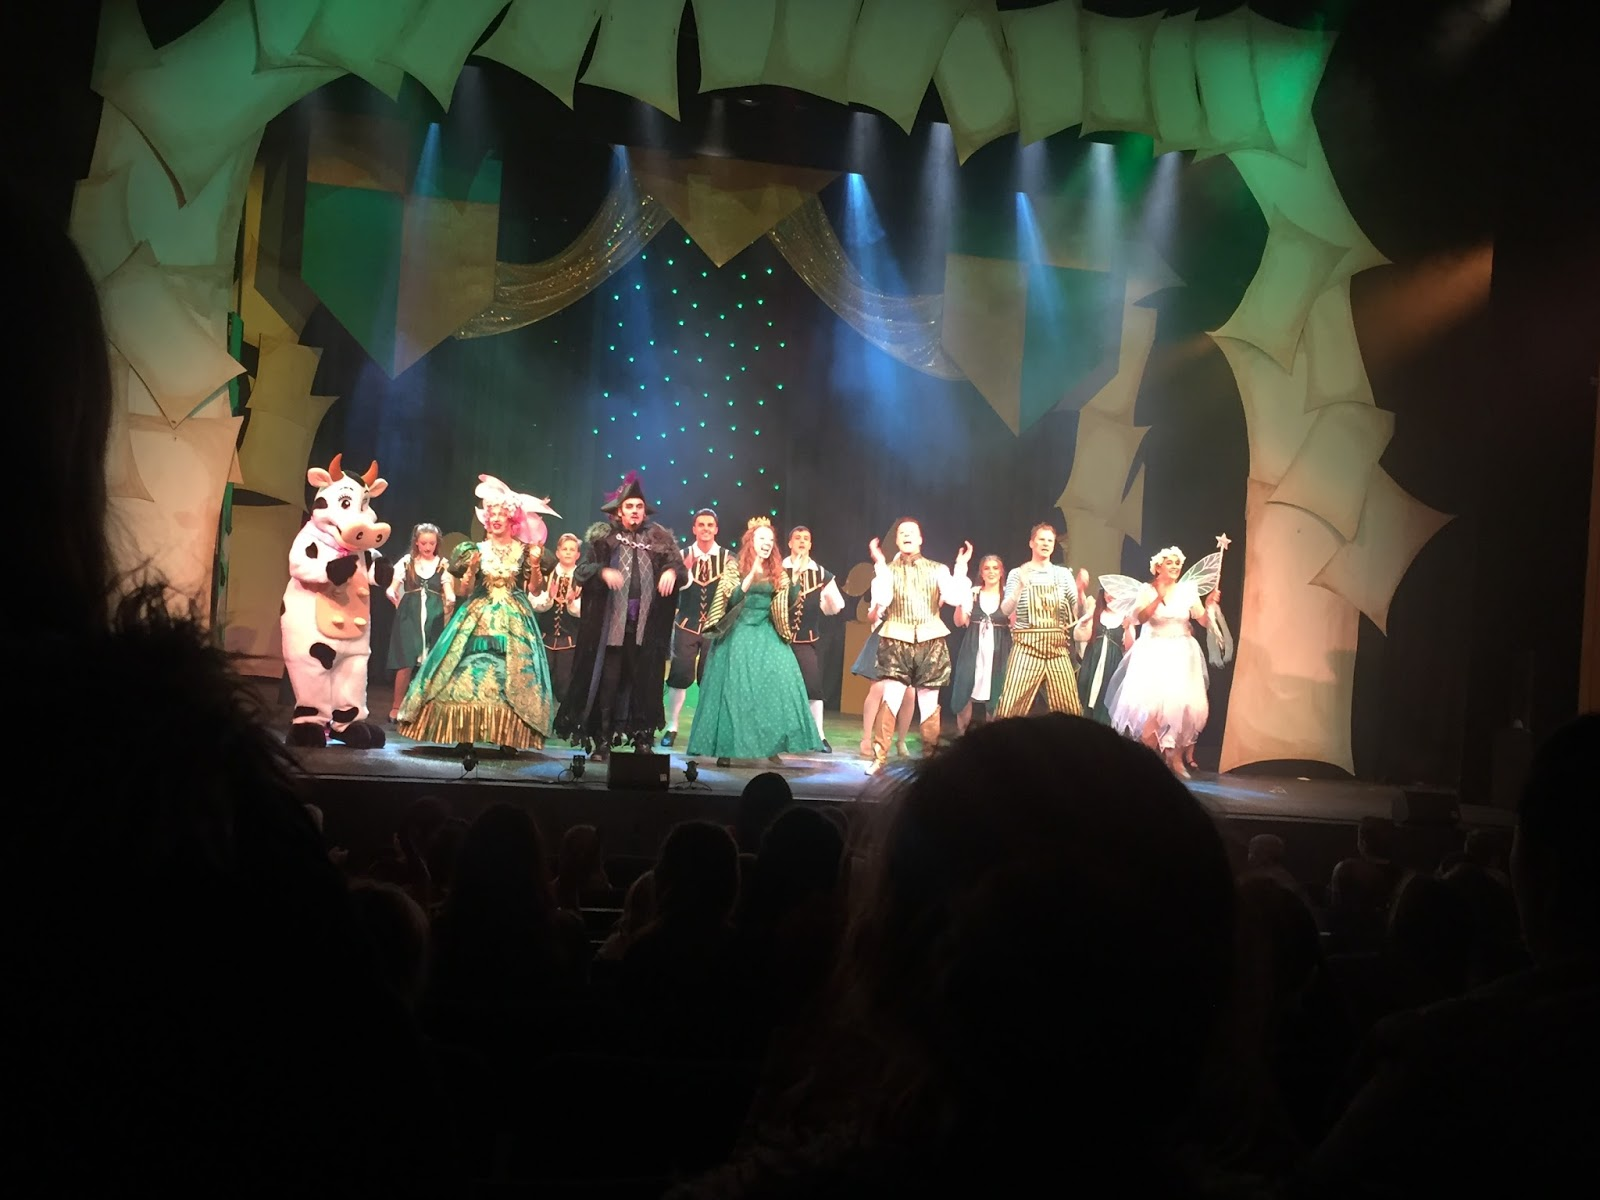 Jack and the Beanstalk Pantomime Review | Gala Theatre, Durham - cast on stage